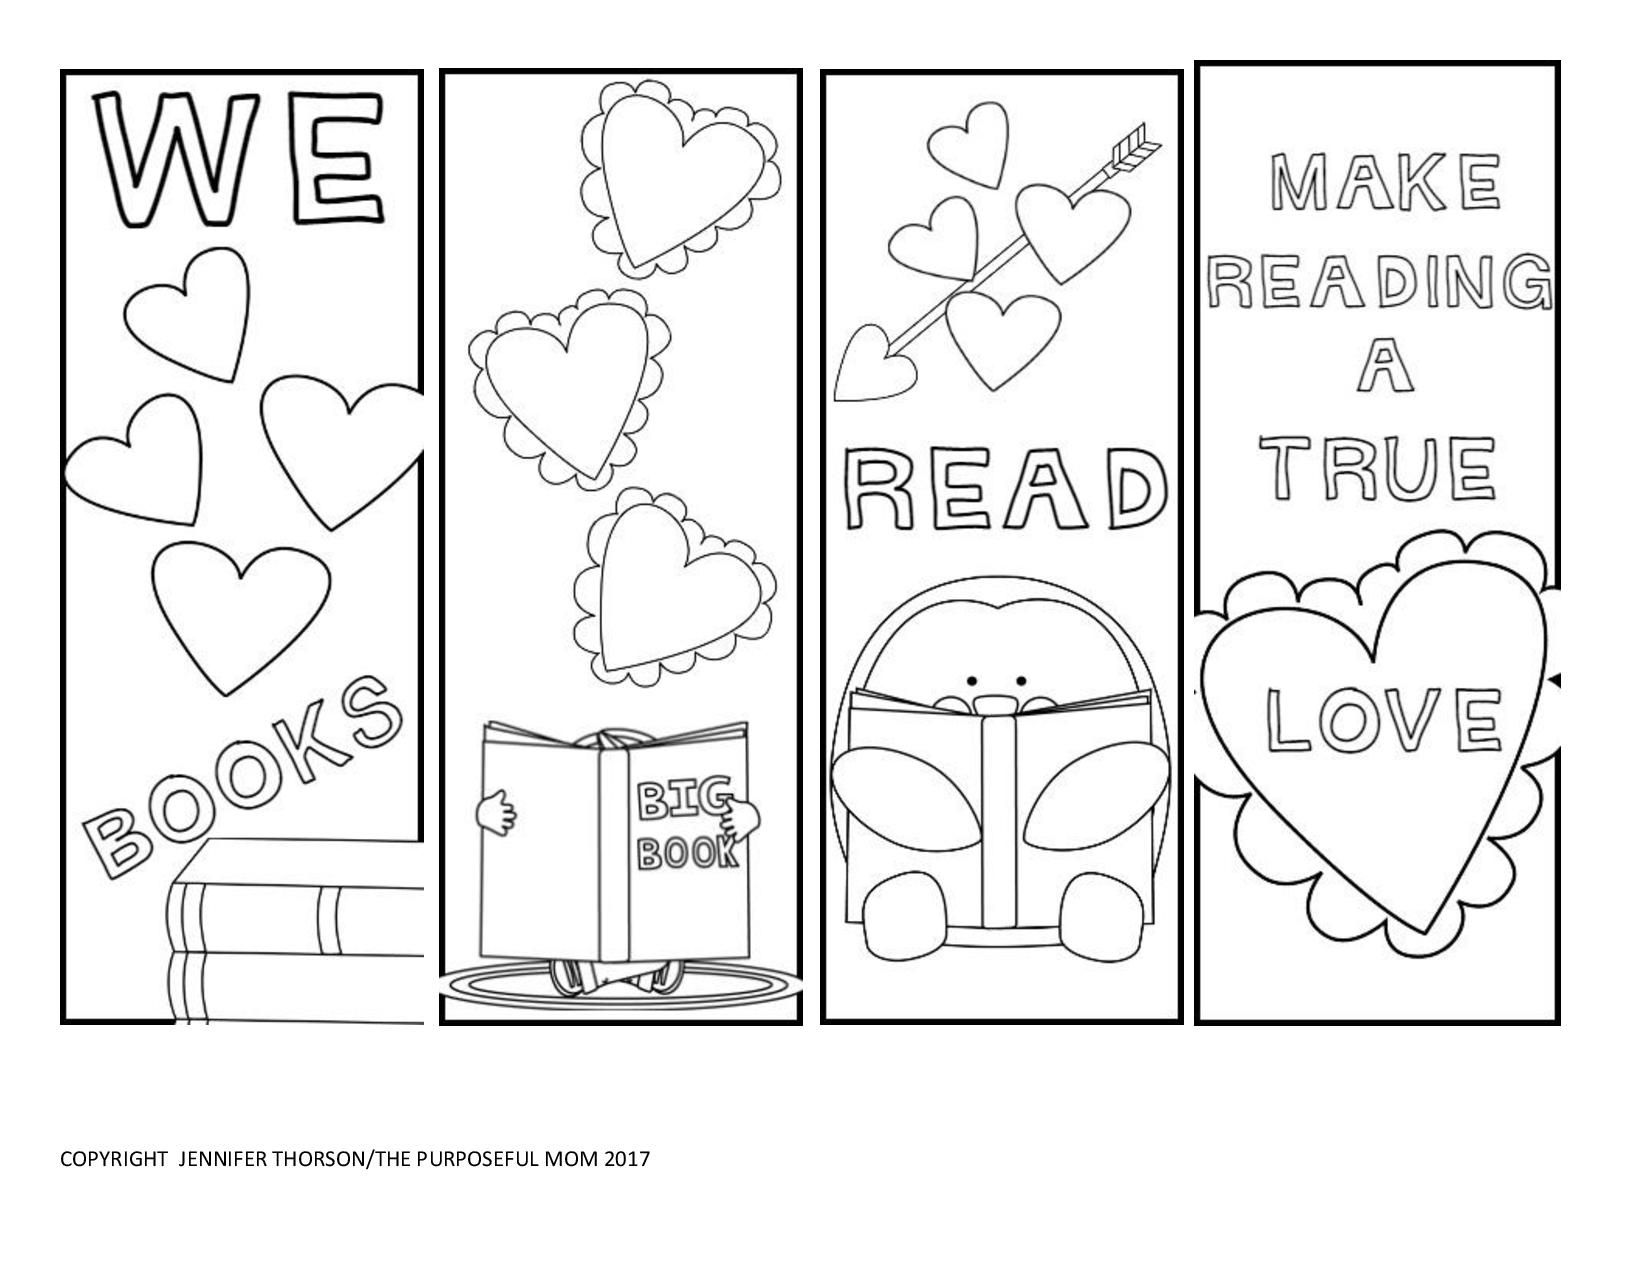 Print These Free Valentine S Day Bookmarks To Color Fun For Kids And Grownups Coloring Bookmarks Free Coloring Bookmarks Printable Valentine Bookmarks